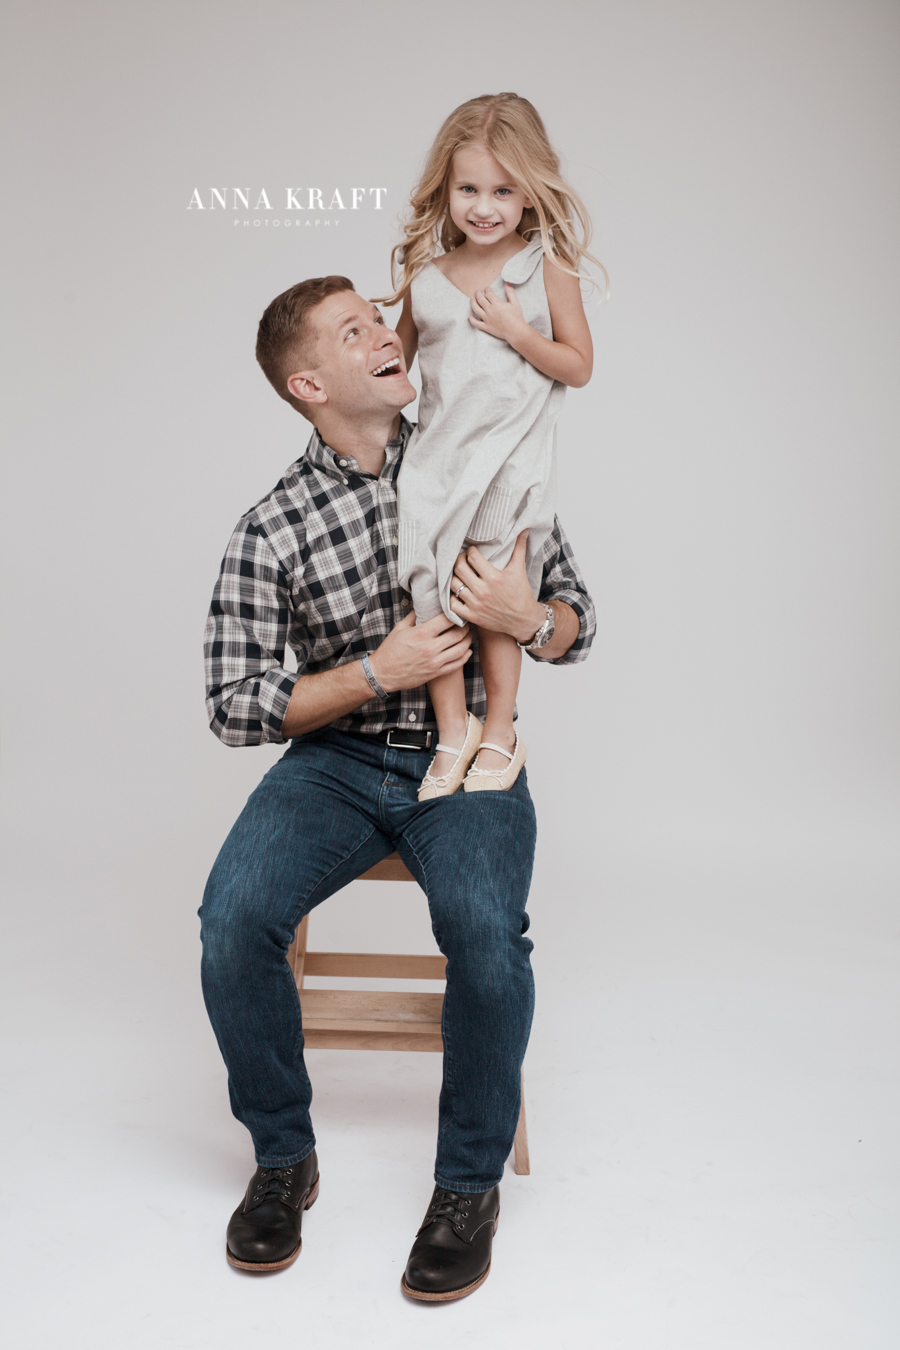 anna_kraft_photography_georgetown_square_studio_family_portrait_Christmas_walters_pictures-12.jpg